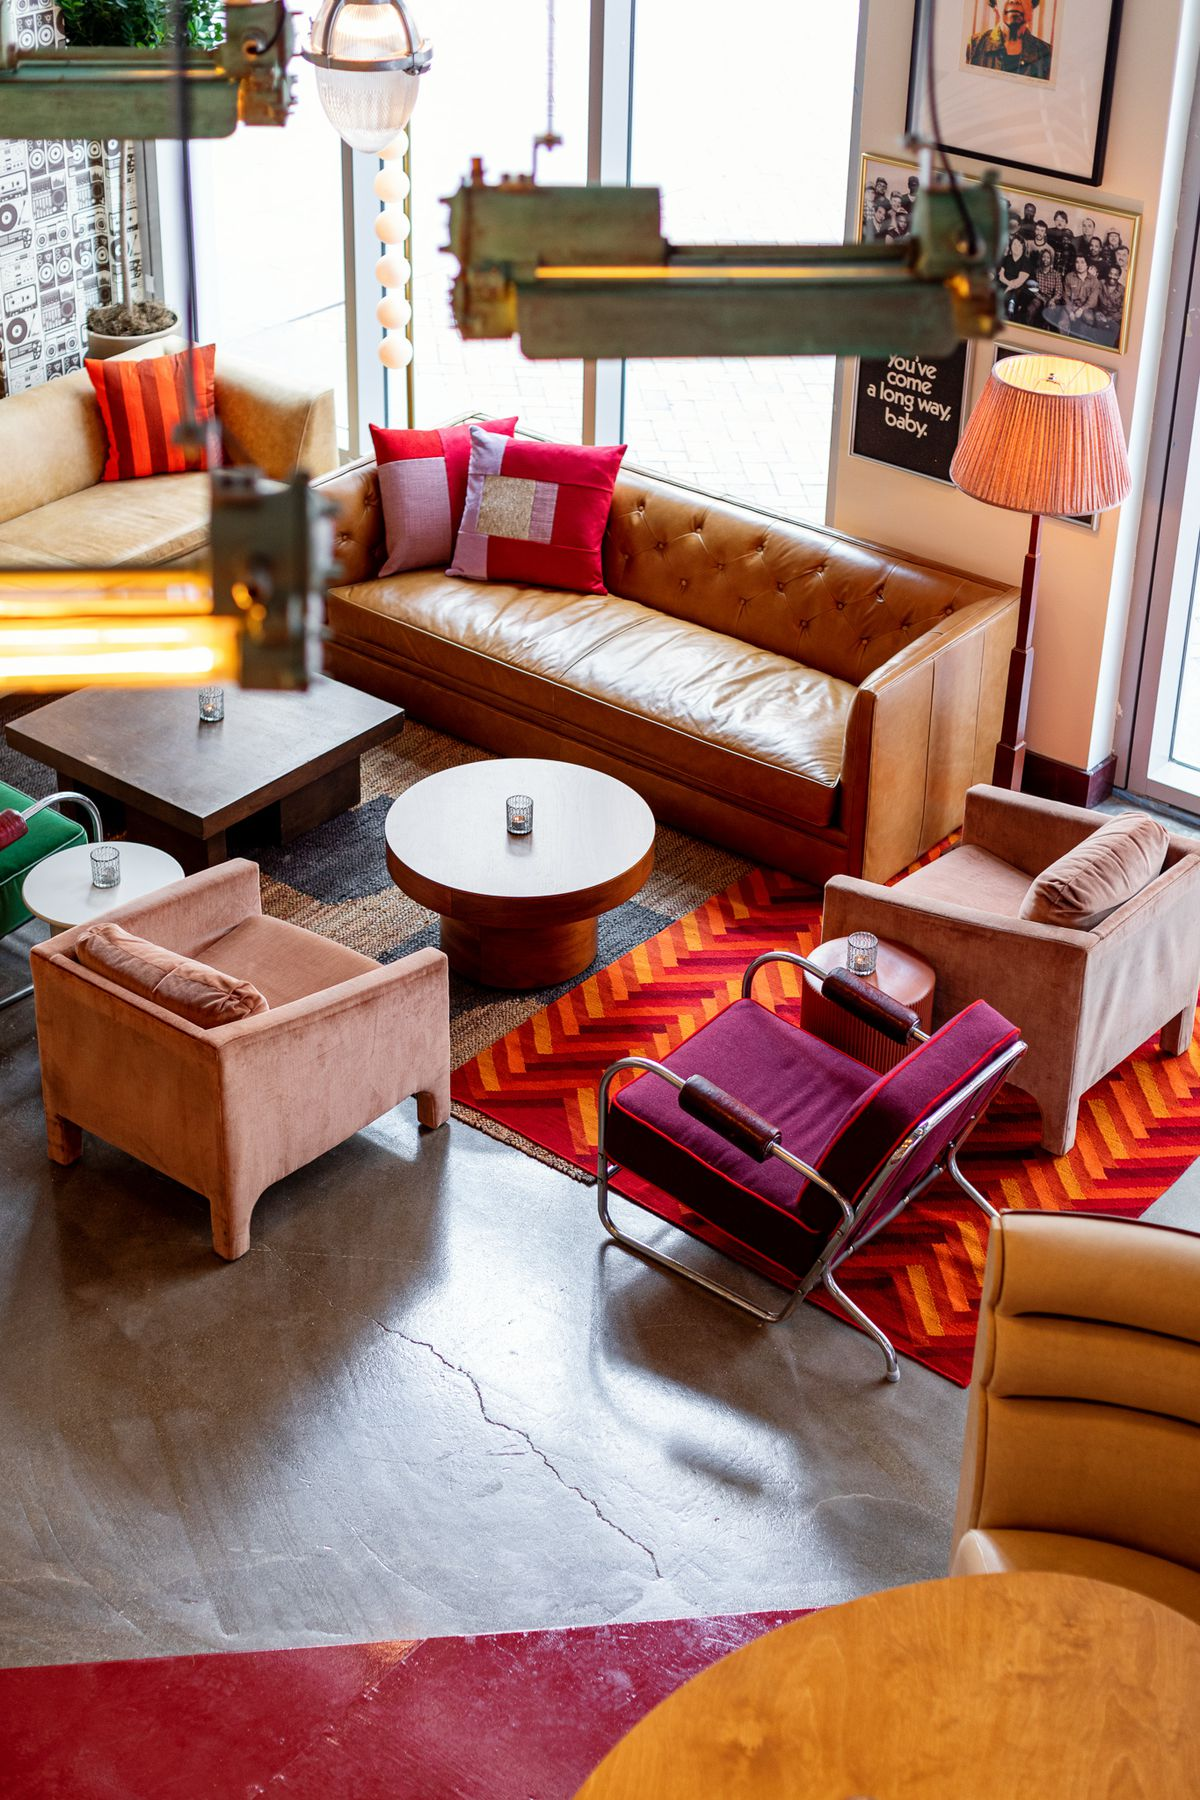 An aerial view from the mezzanine of two sofas, and a few eclectic chairs surrounding two wooden coffee tables on the first floor